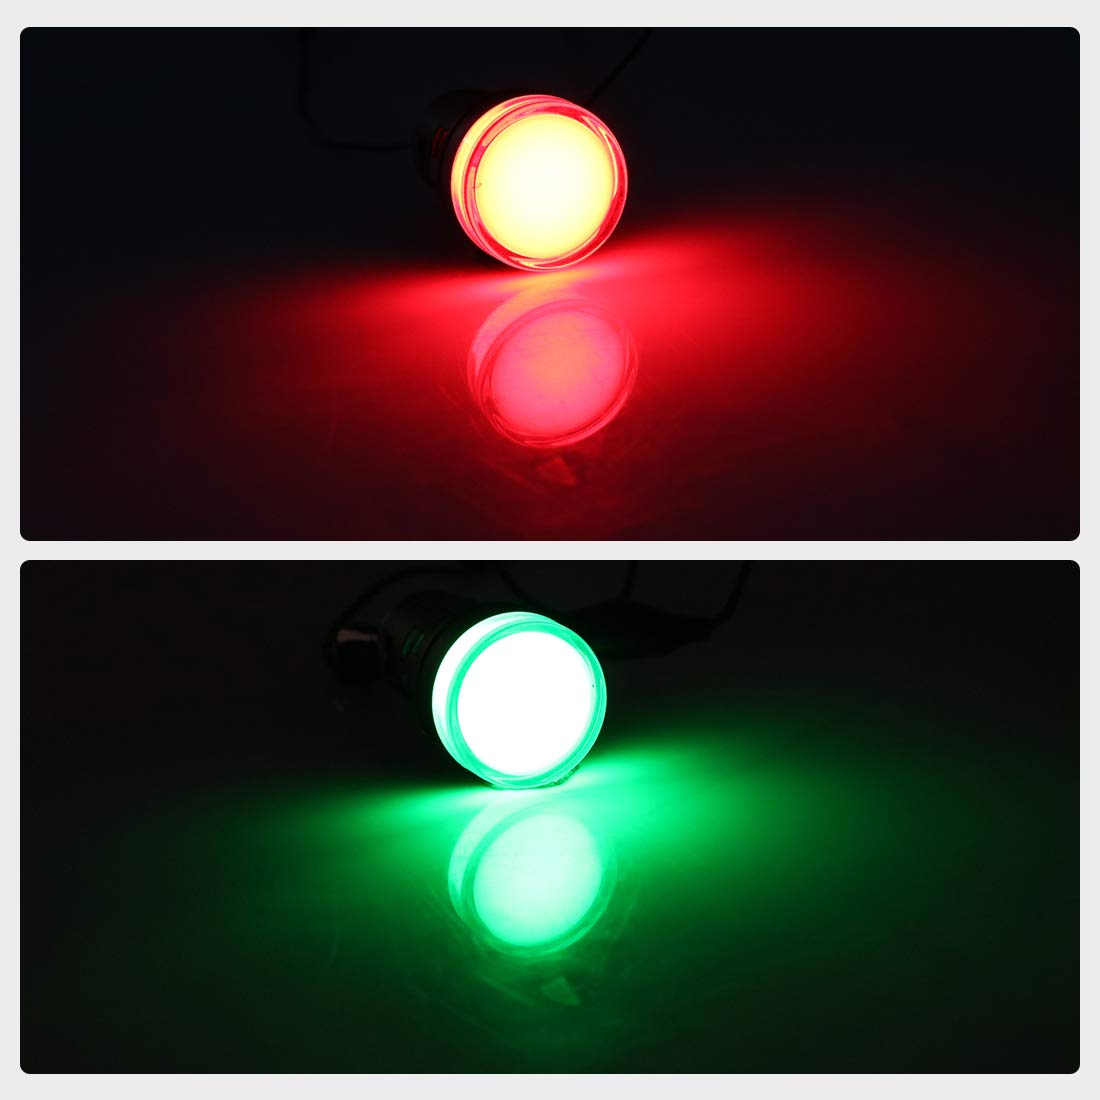 uxcell 10Pcs Red Green Indicator Light AC/DC 110V, 22mm Panel Mount, for Electrical Control Panel, HVAC, DIY Projects: Industrial & Scientific